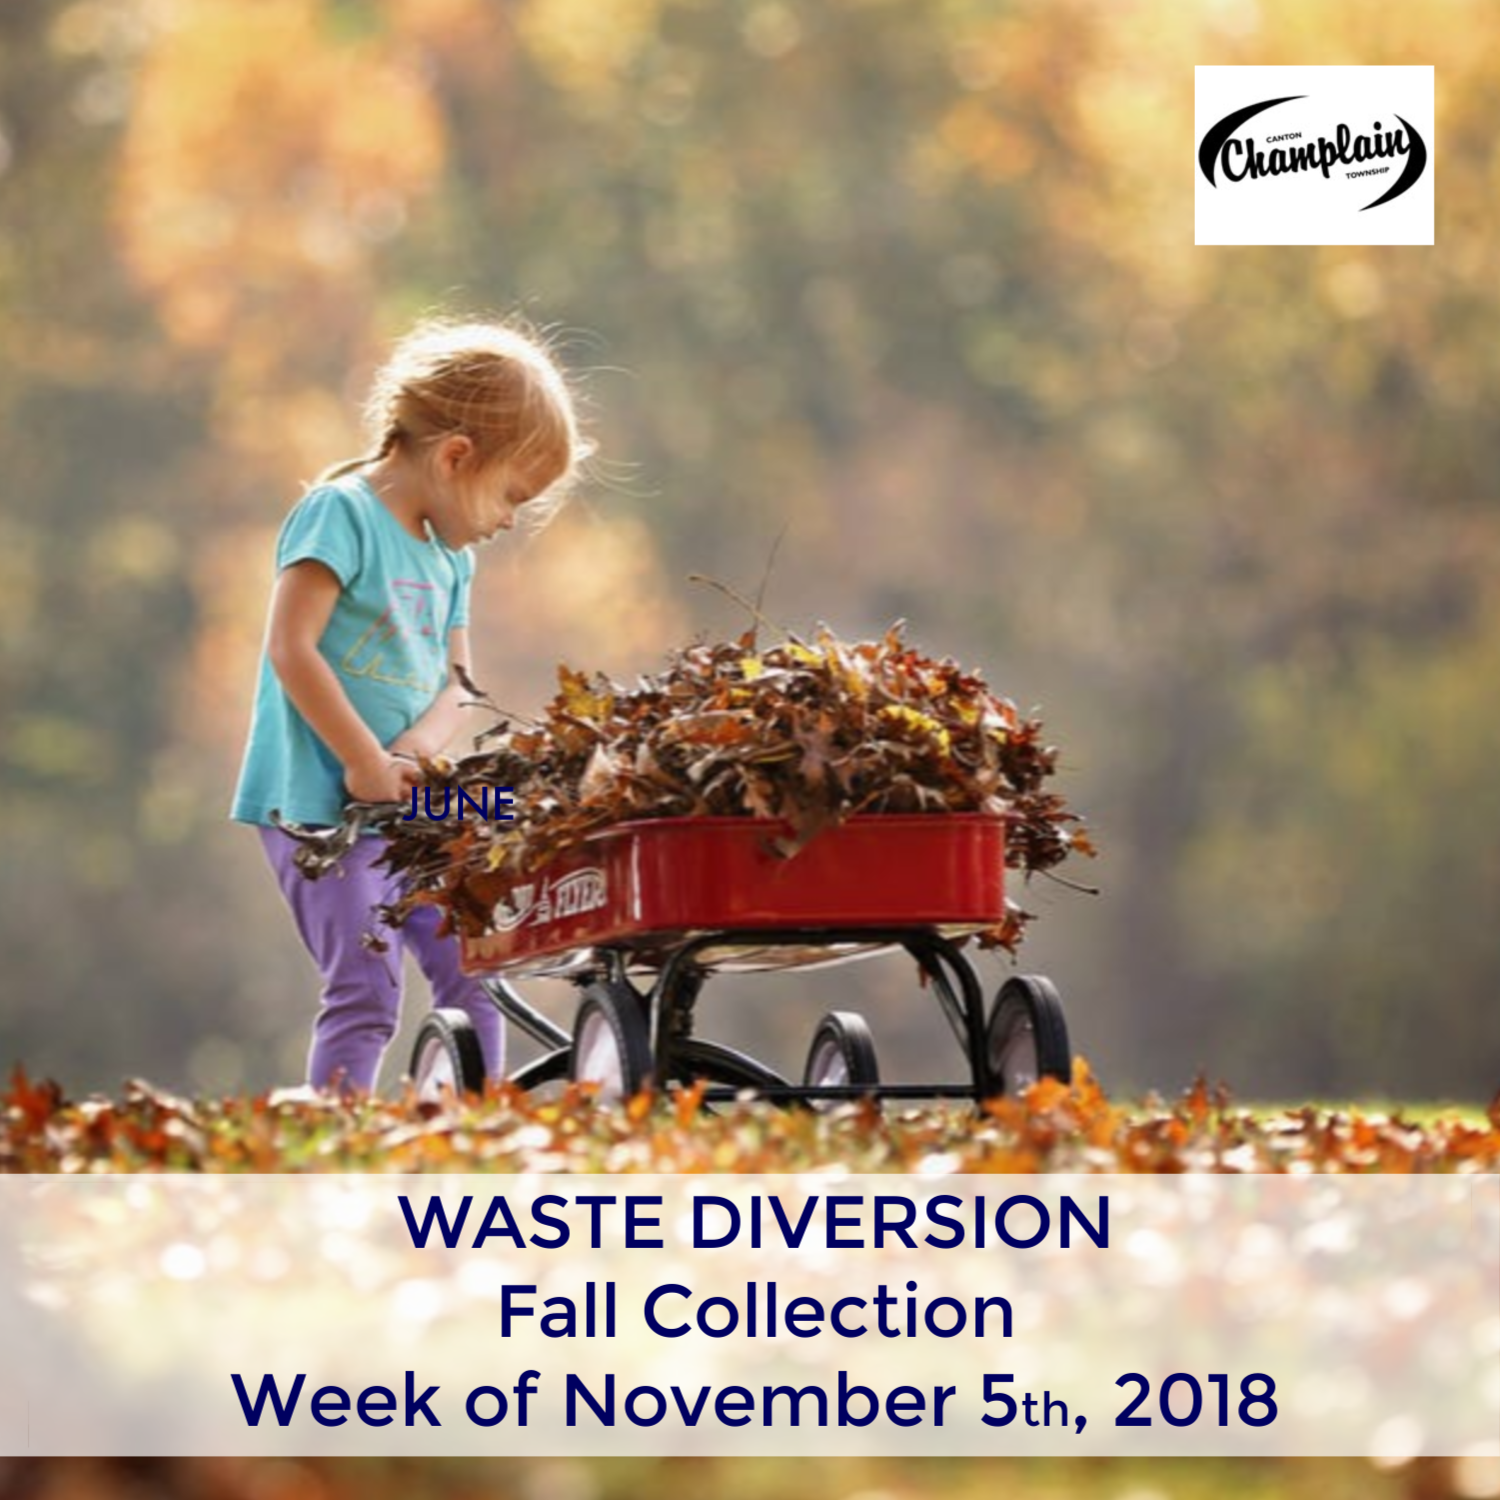 Waste Diversion